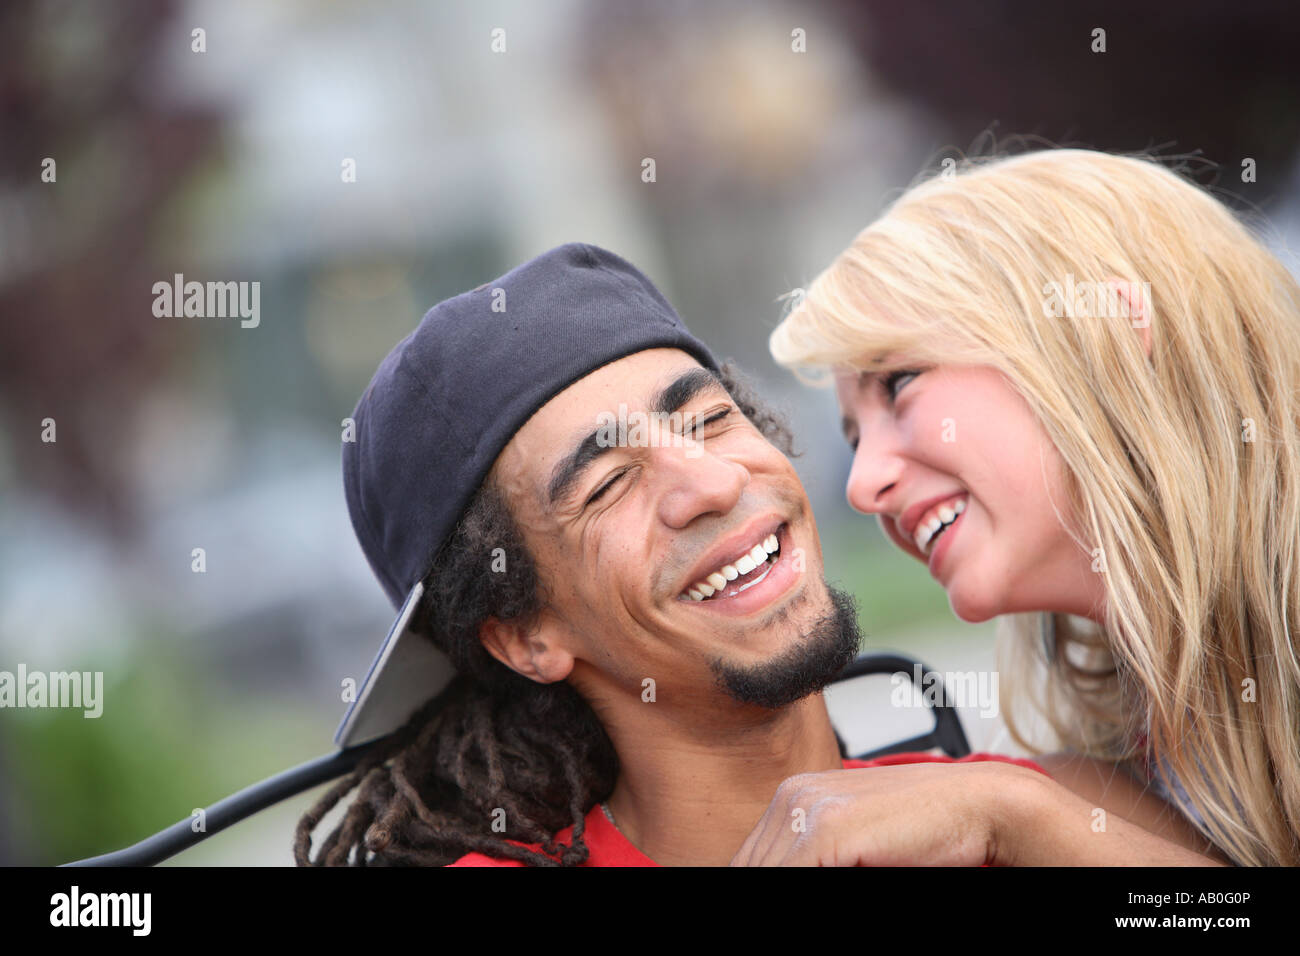 Young couple smiling together Photo Stock